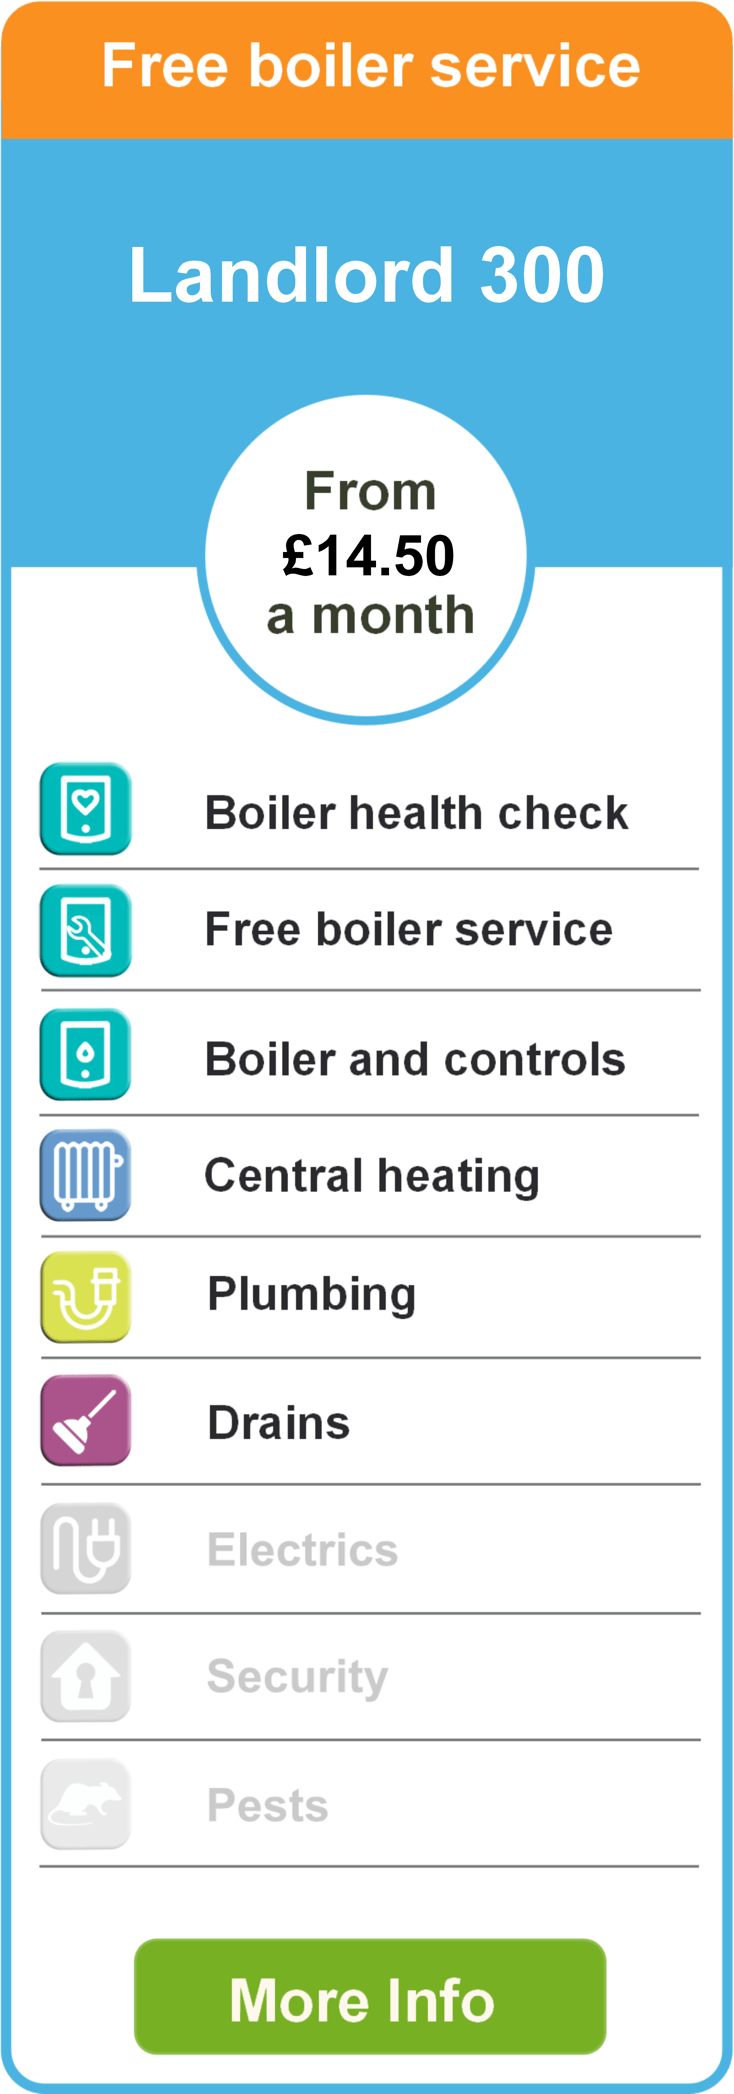 Landlord Boiler Cover >> Certi Landlord Cover From 41p A Day Free Boiler Service And Cp12